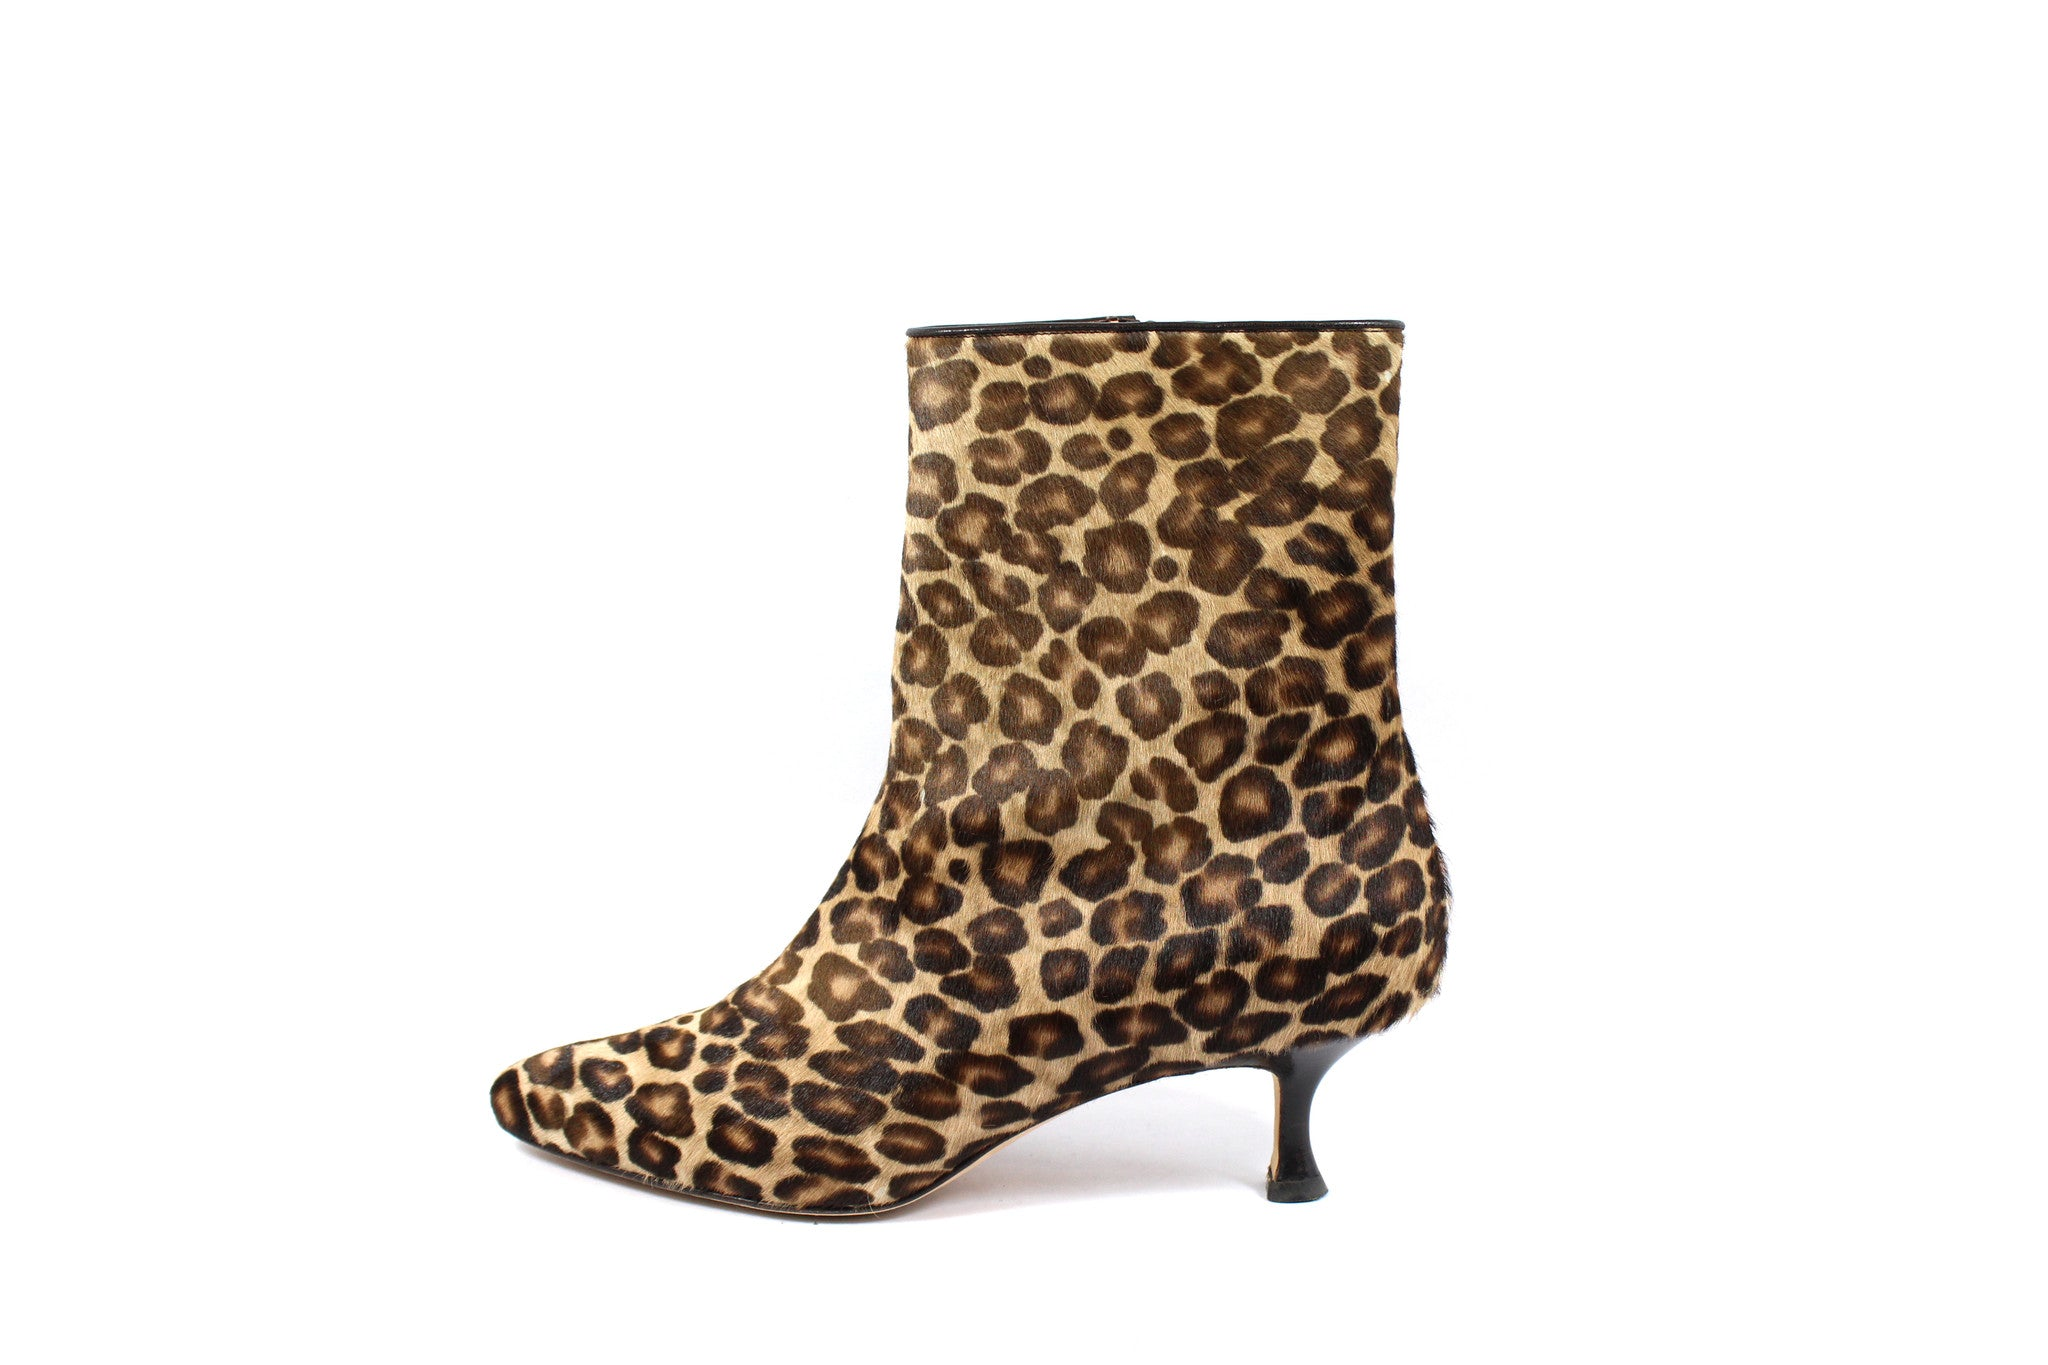 Manolo Blahnik Leopard Calf Hair Ankle Boots (Size 38) - Encore Consignment - 2